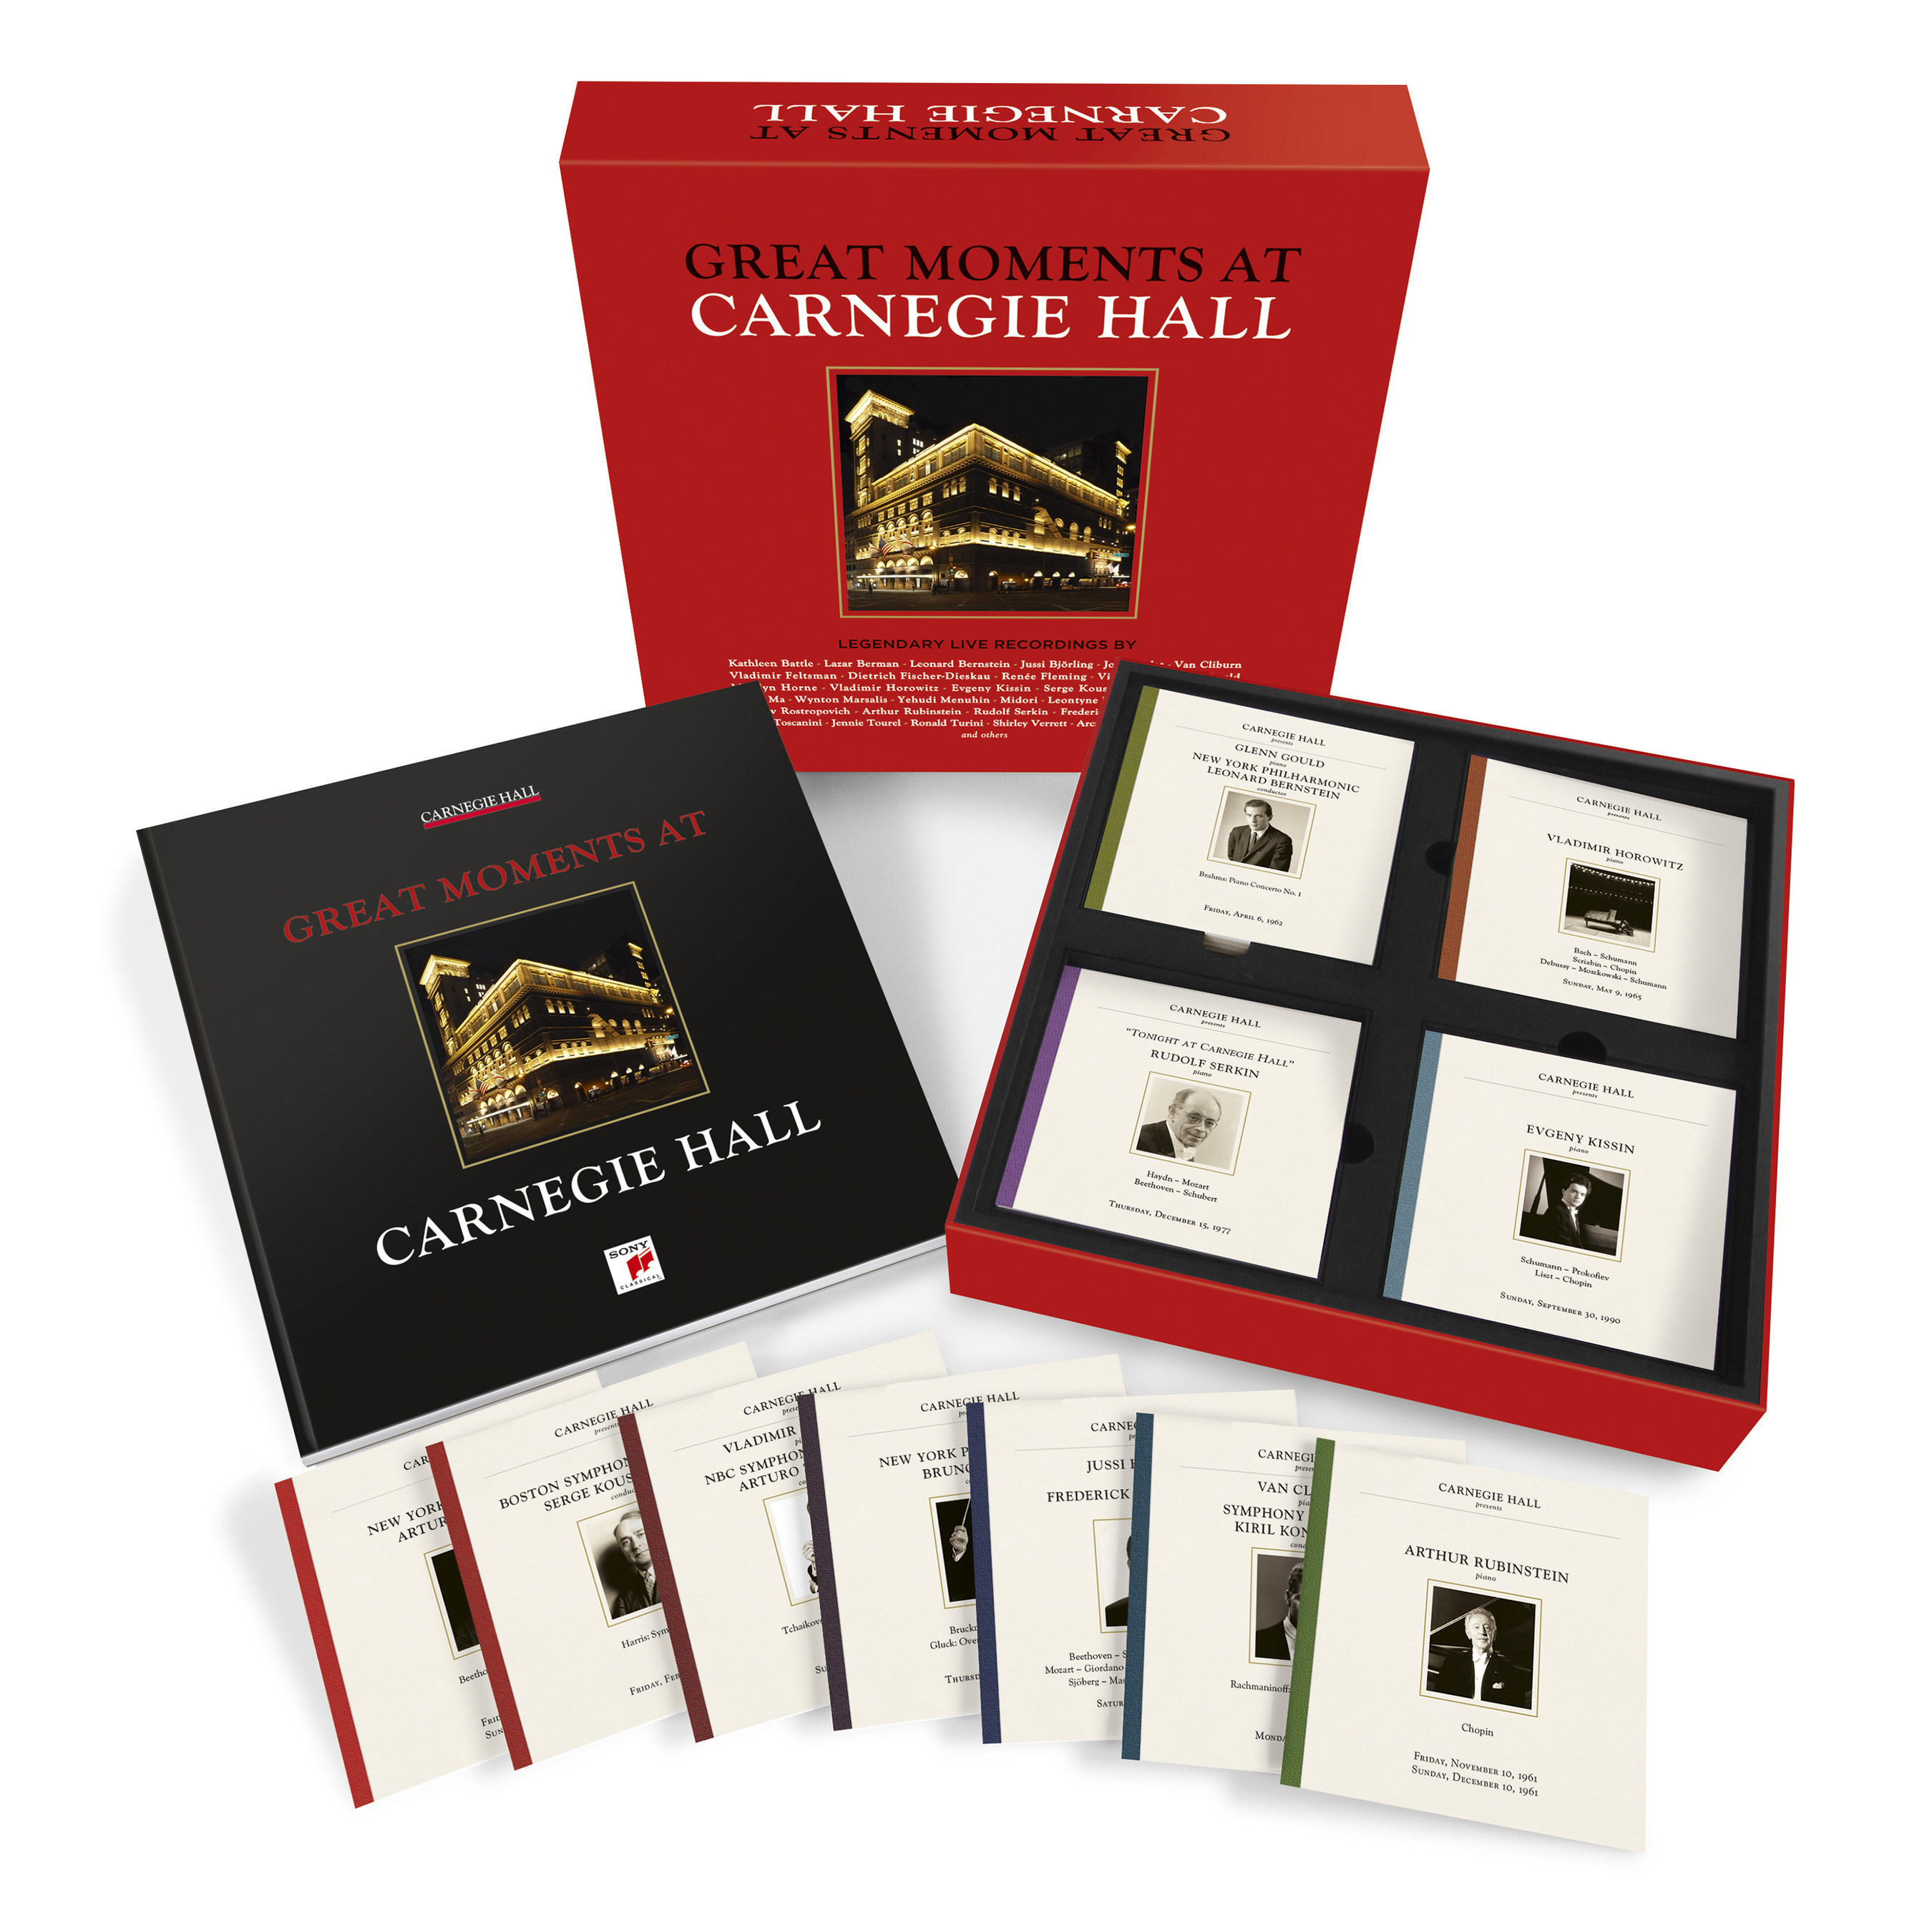 GREAT MOMENTS AT CARNEGIE HALL box set Available April 29